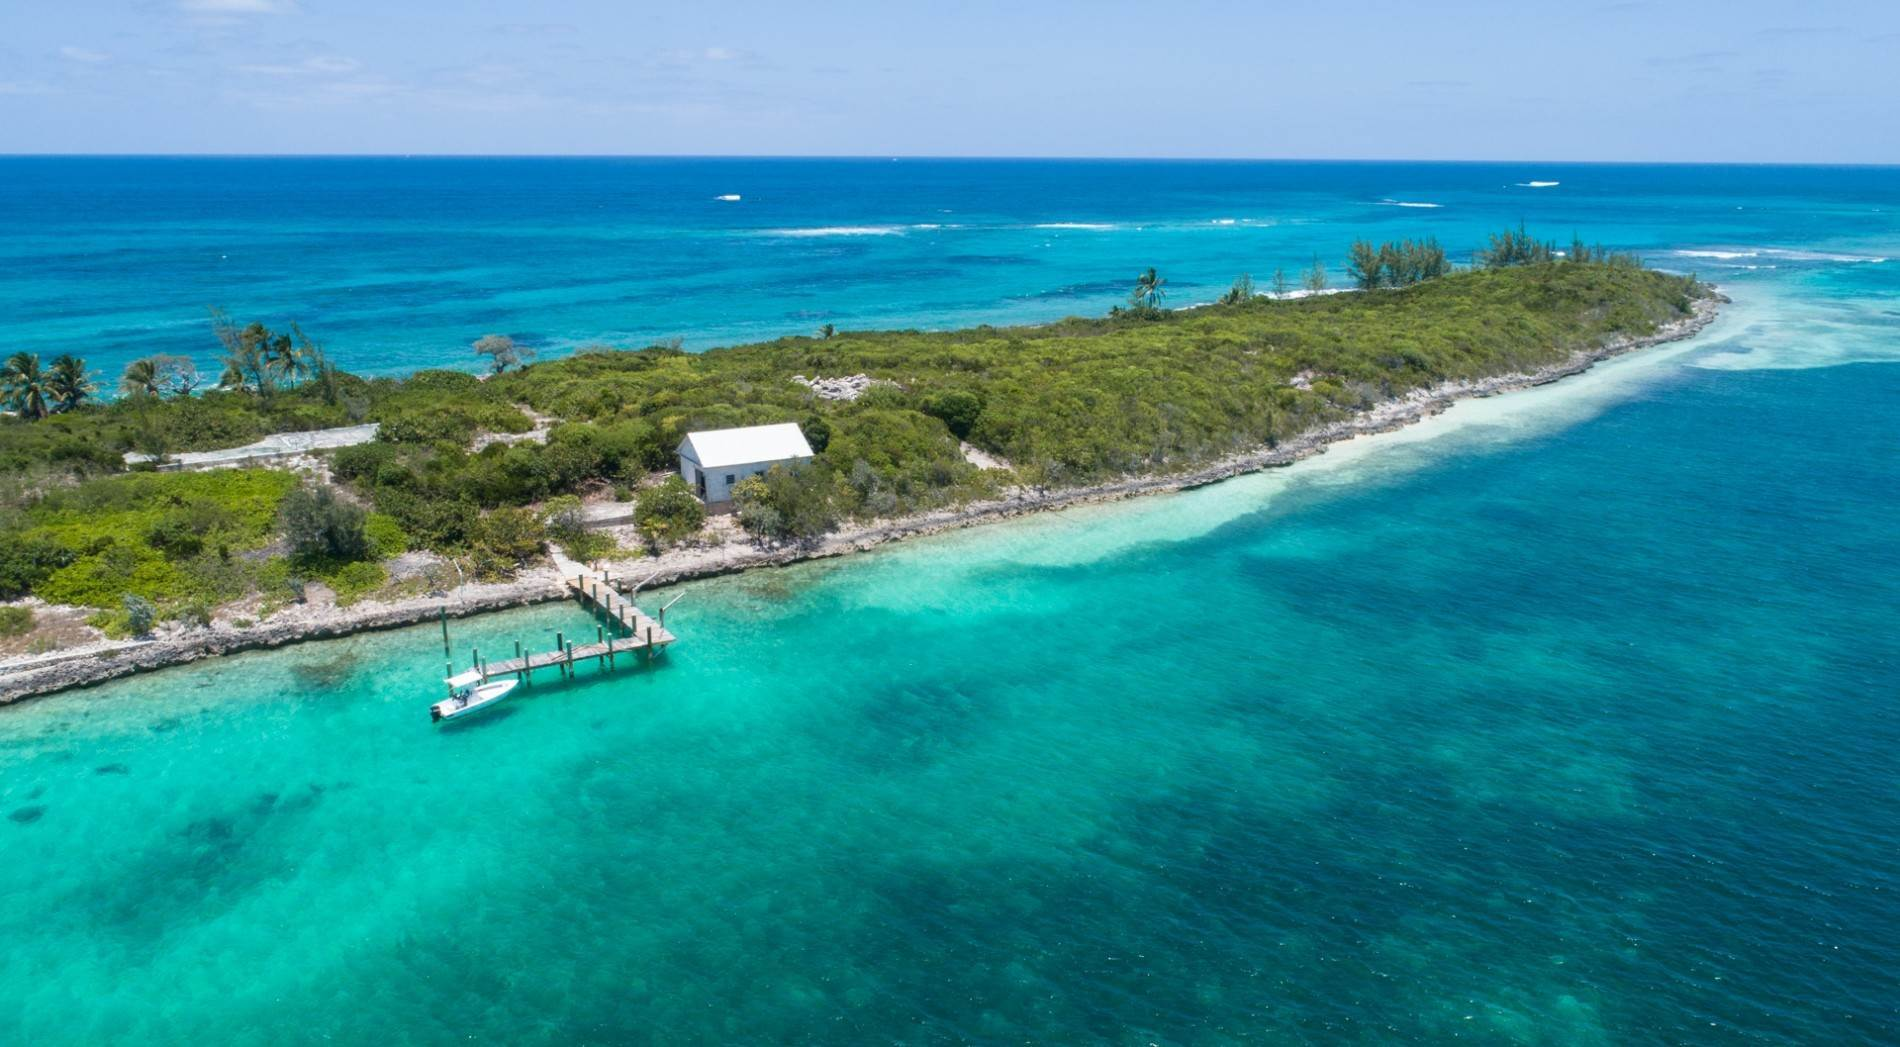 7. Private Islands for Sale at Pierre Island, A Perfect Private Retreat Island Near Harbour Island - MLS 40806 Harbour Island, Eleuthera, Bahamas